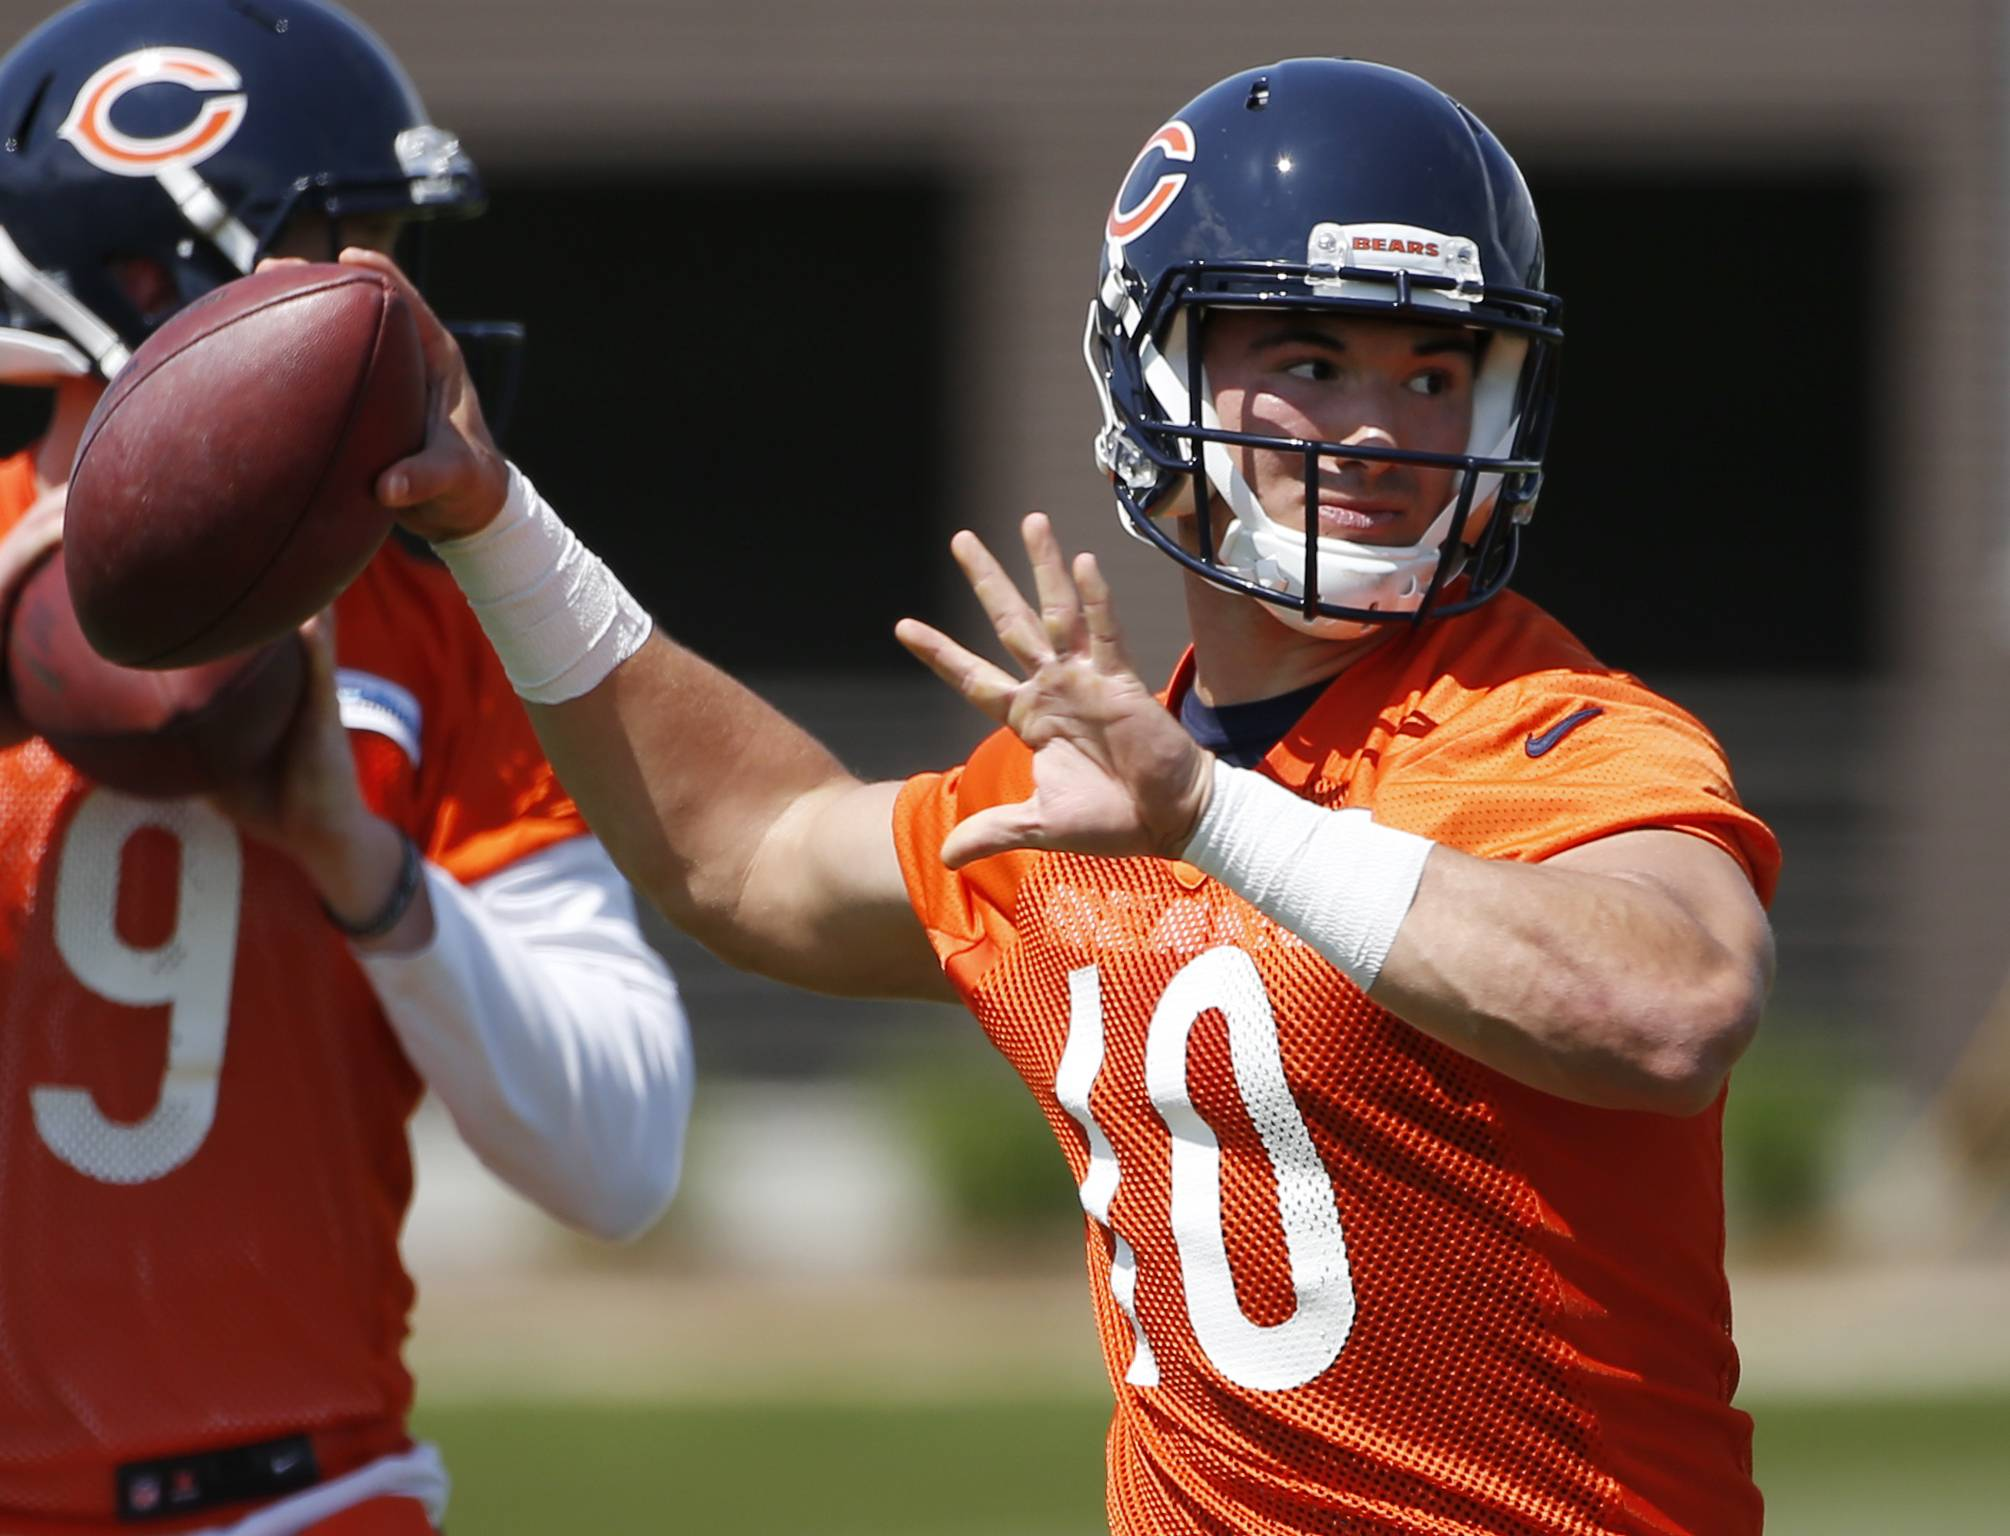 Chicago Bears quarterback Mitchell Trubisky looks to pass during NFL football rookie minicamp in Lake Forest, Ill., Friday, May 12, 2017. (AP Photo/Nam Y. Huh)